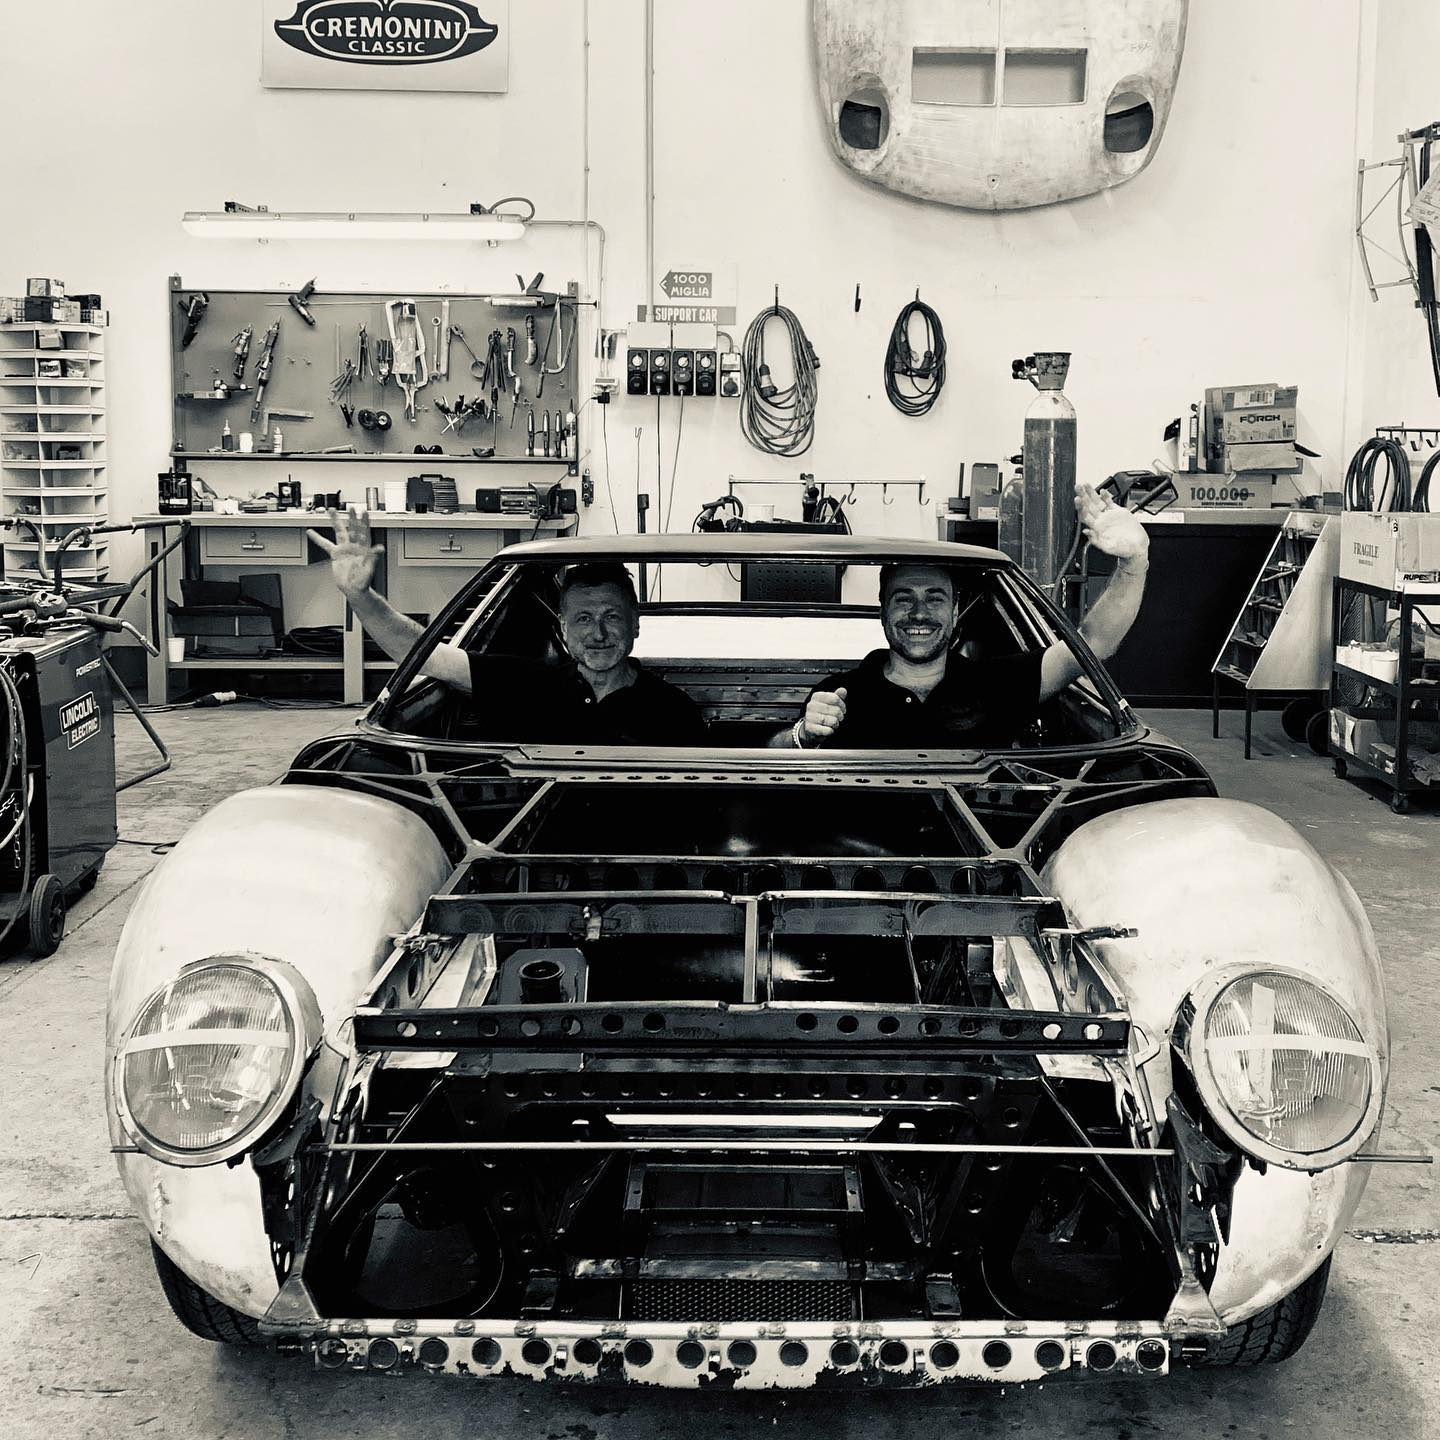 After a challenging week, our guys are waving goodbye and taking a daydream drive towards the weekend sitting in our ongoing Miura SV project – – – #lamborghini #miurasv #bertone #italiandesign #sixtystyle #getoutanddrive #outontheweekend #cremoniniclassic #highway #naked